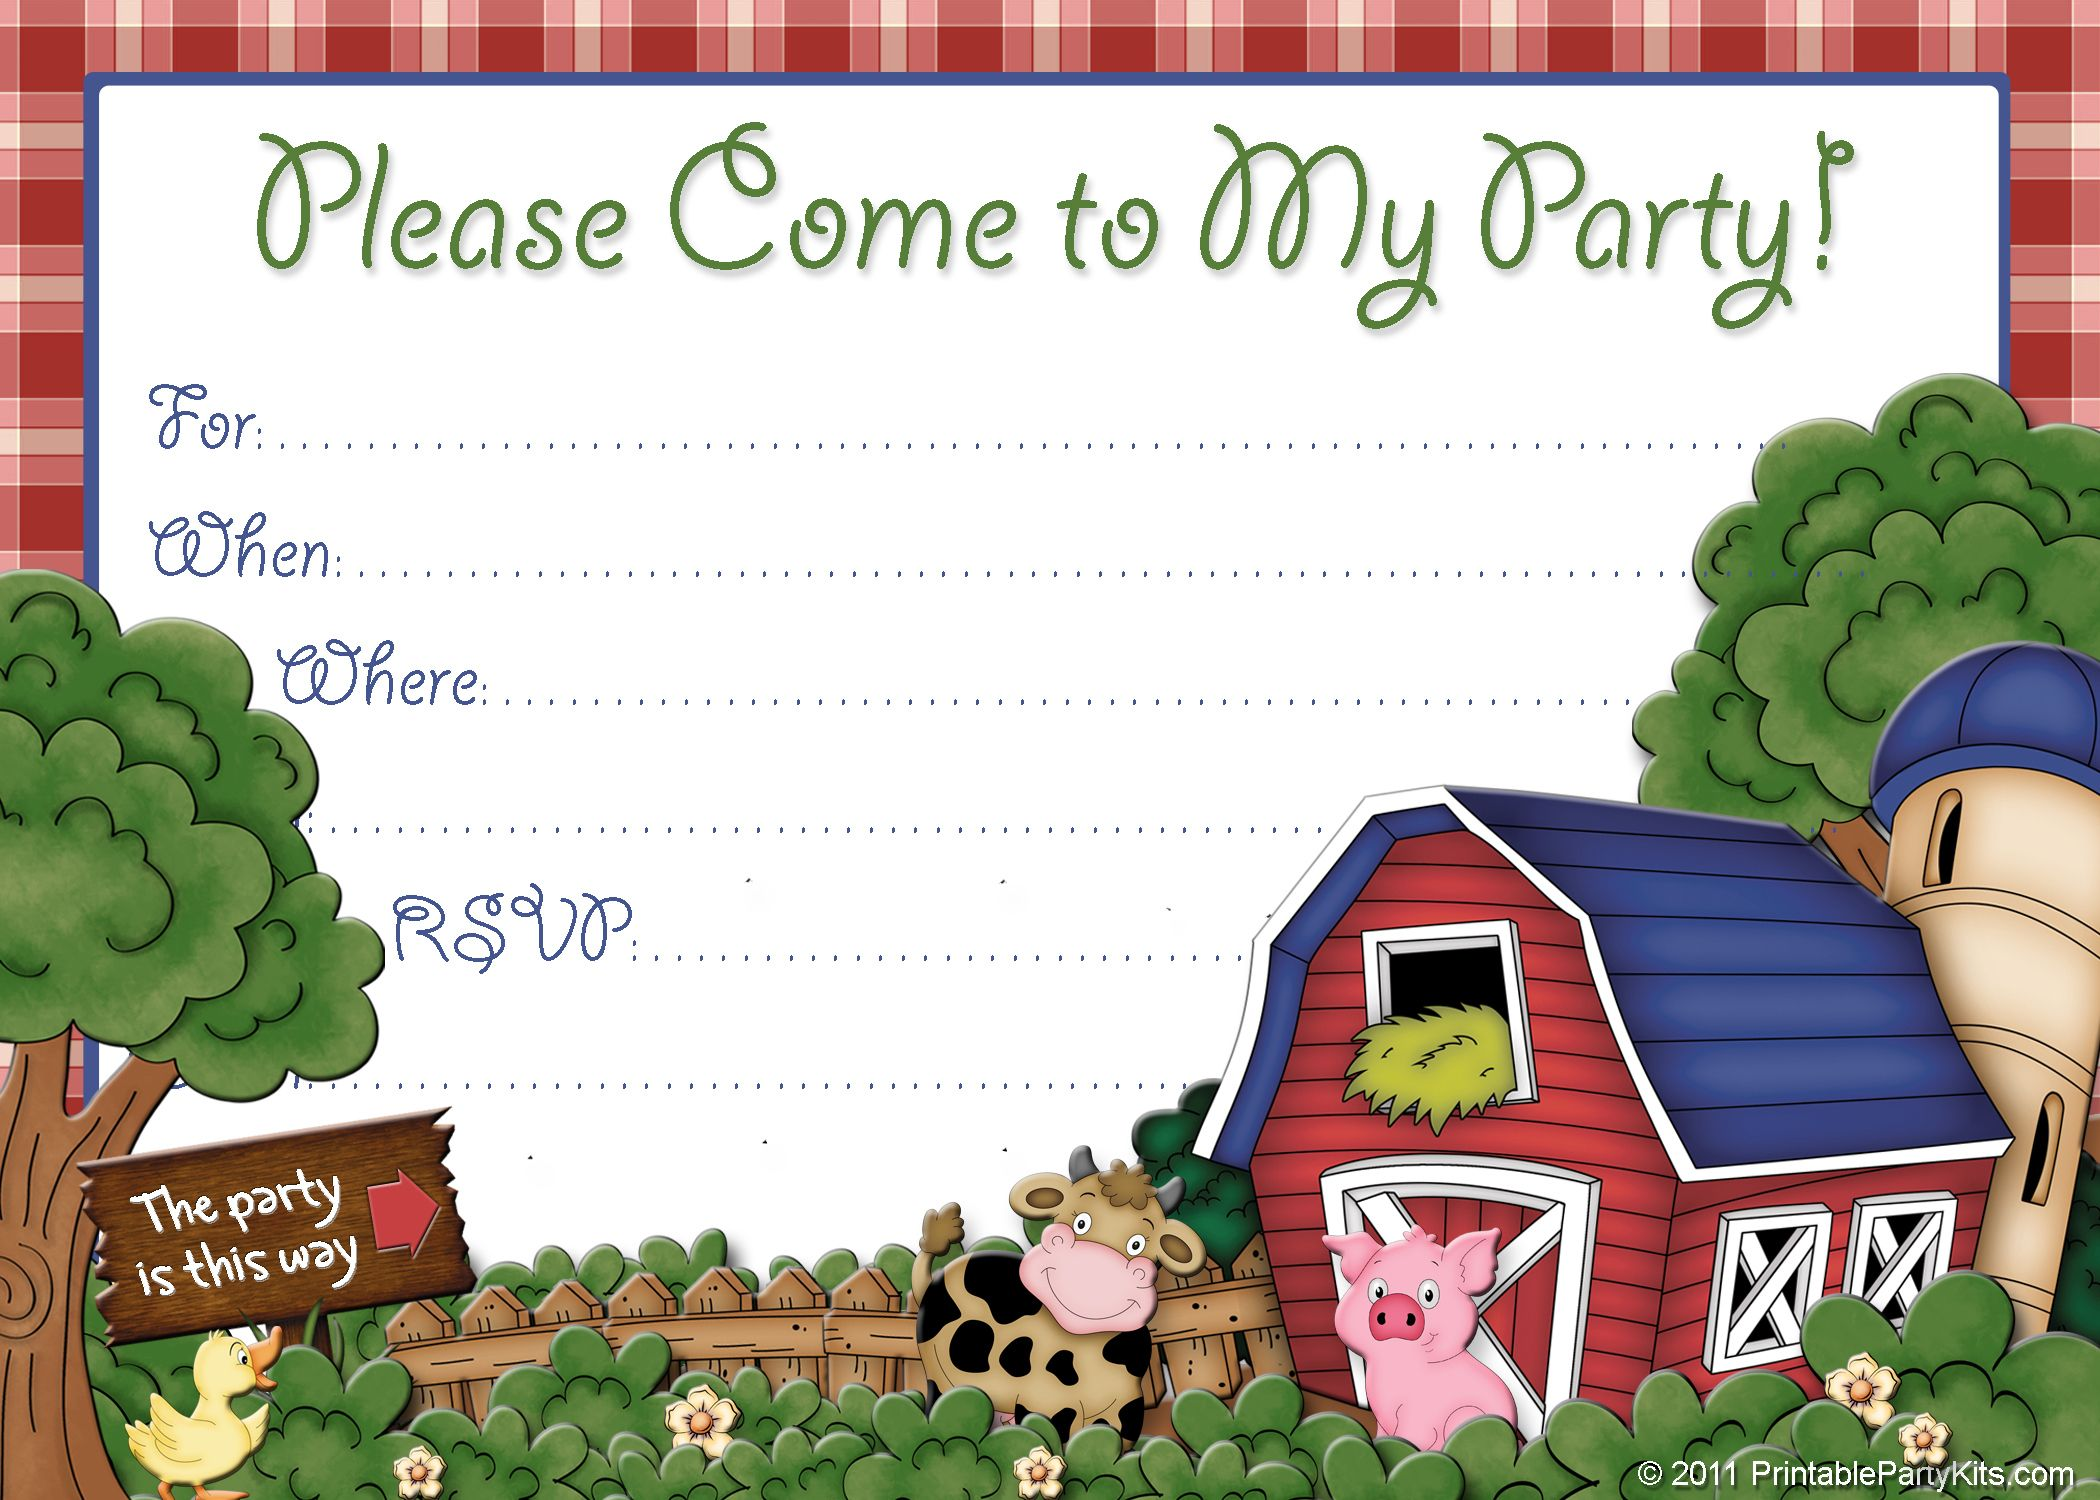 Free Printable Barnyard Farm Invitation Template Free Printable – Free Printable Party Invitations for Kids Birthday Parties